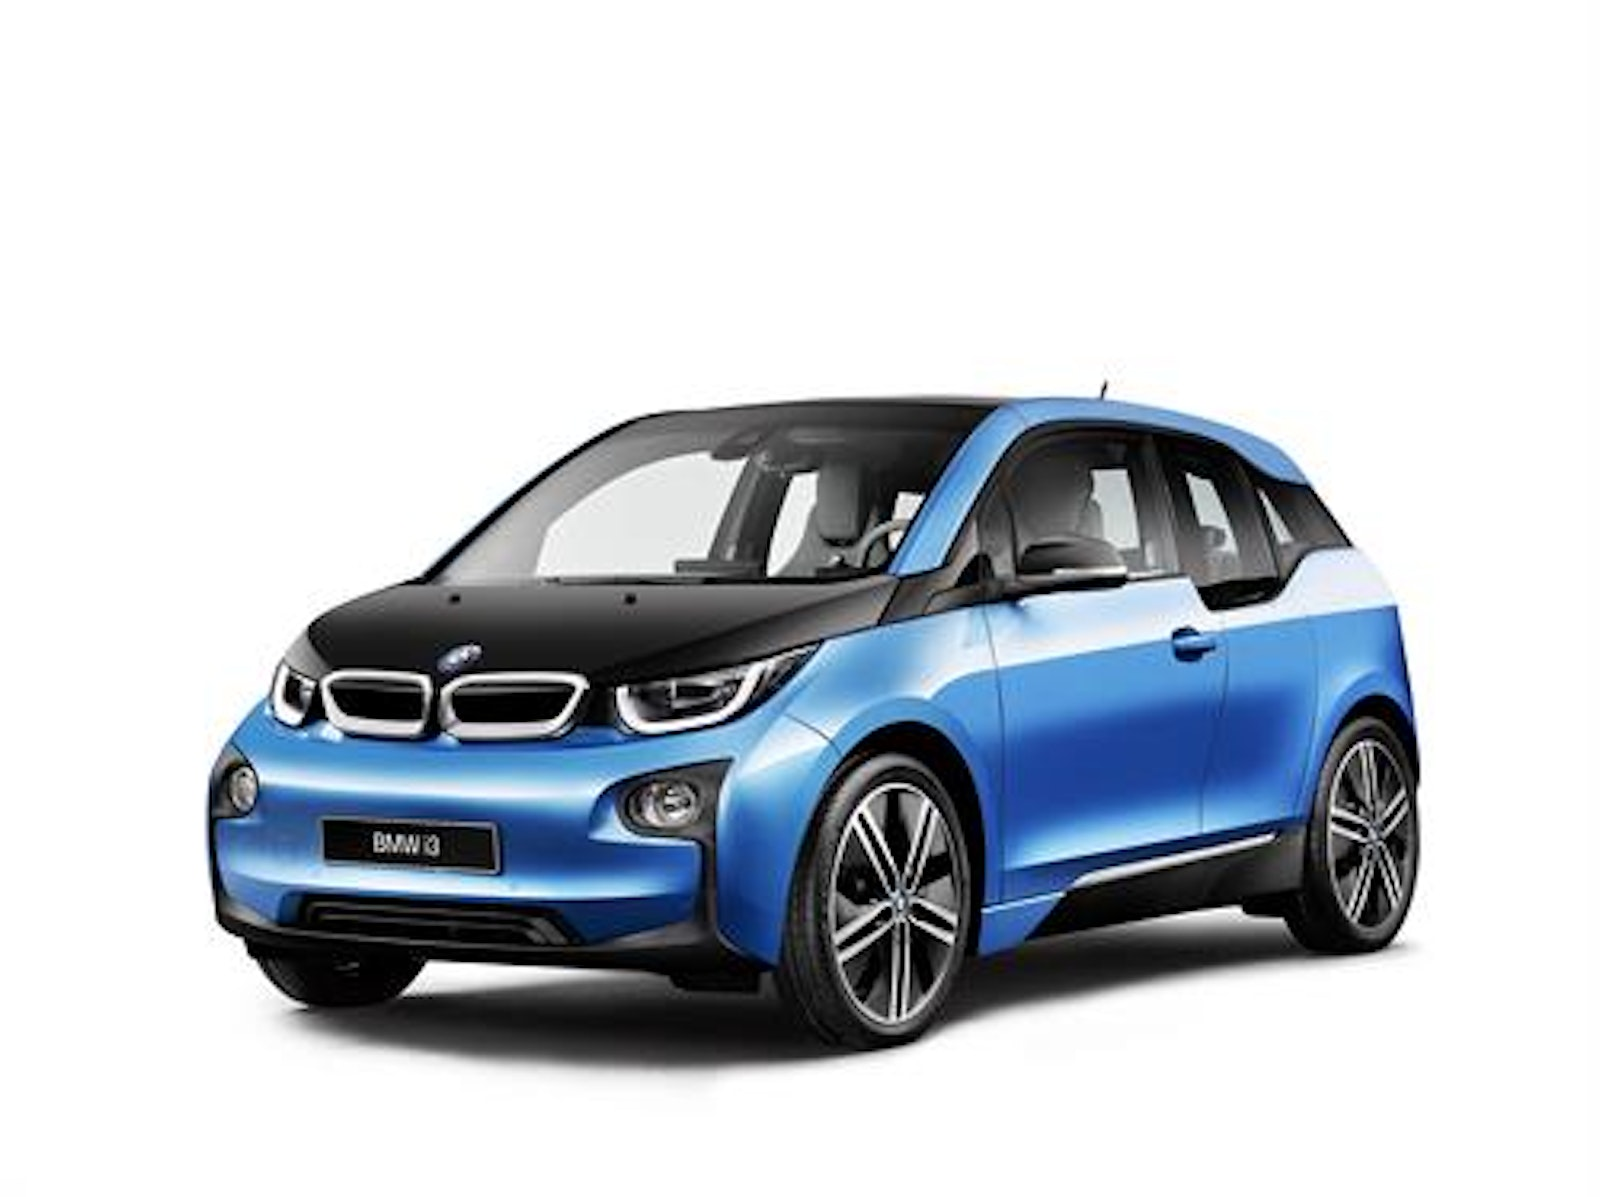 The Bmw I3 Is World S First Premium Car Designed From Ground Up To Be Ed By An Electric Drive System Result A Vehicle That Embos